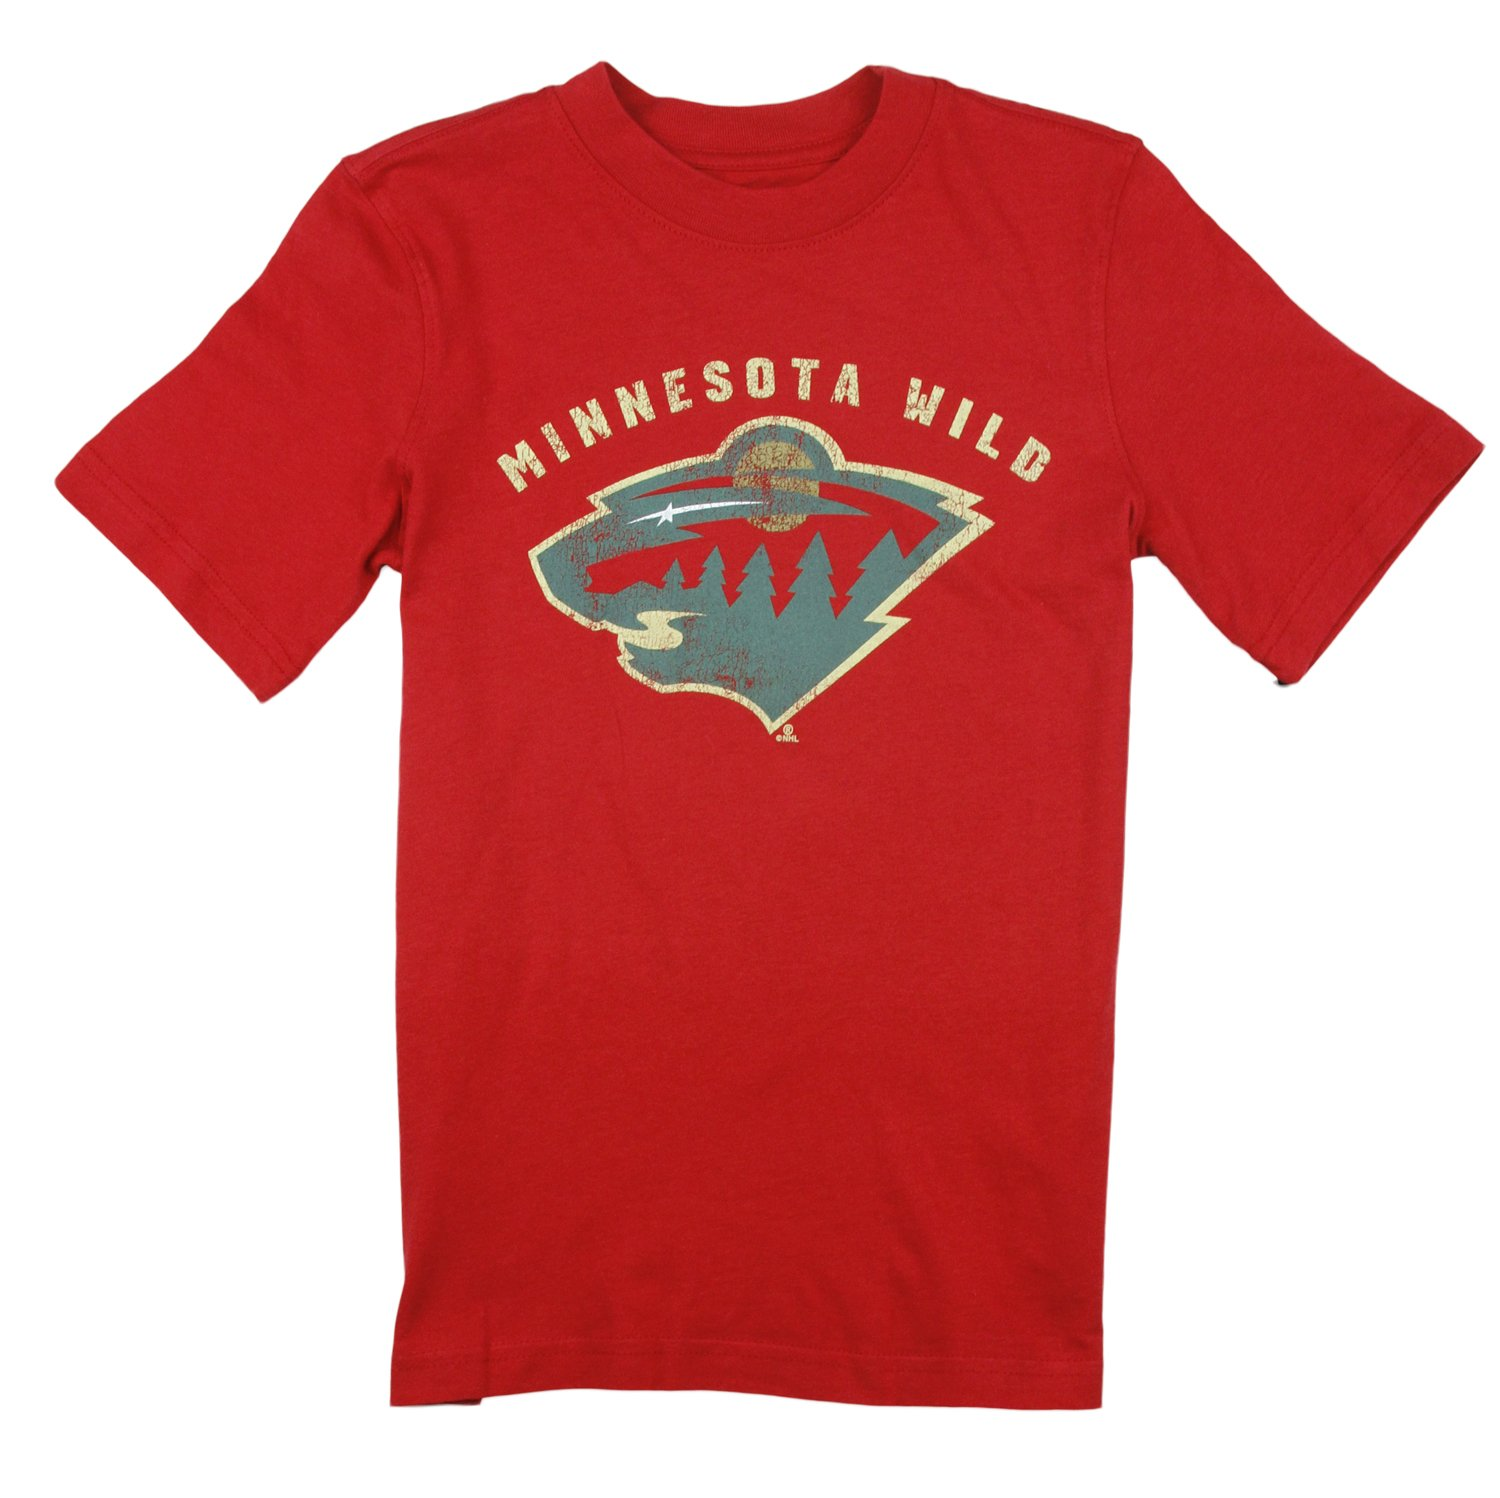 NHL Hockey Youth Boys Minnesota Wild Vintage Tee Red by